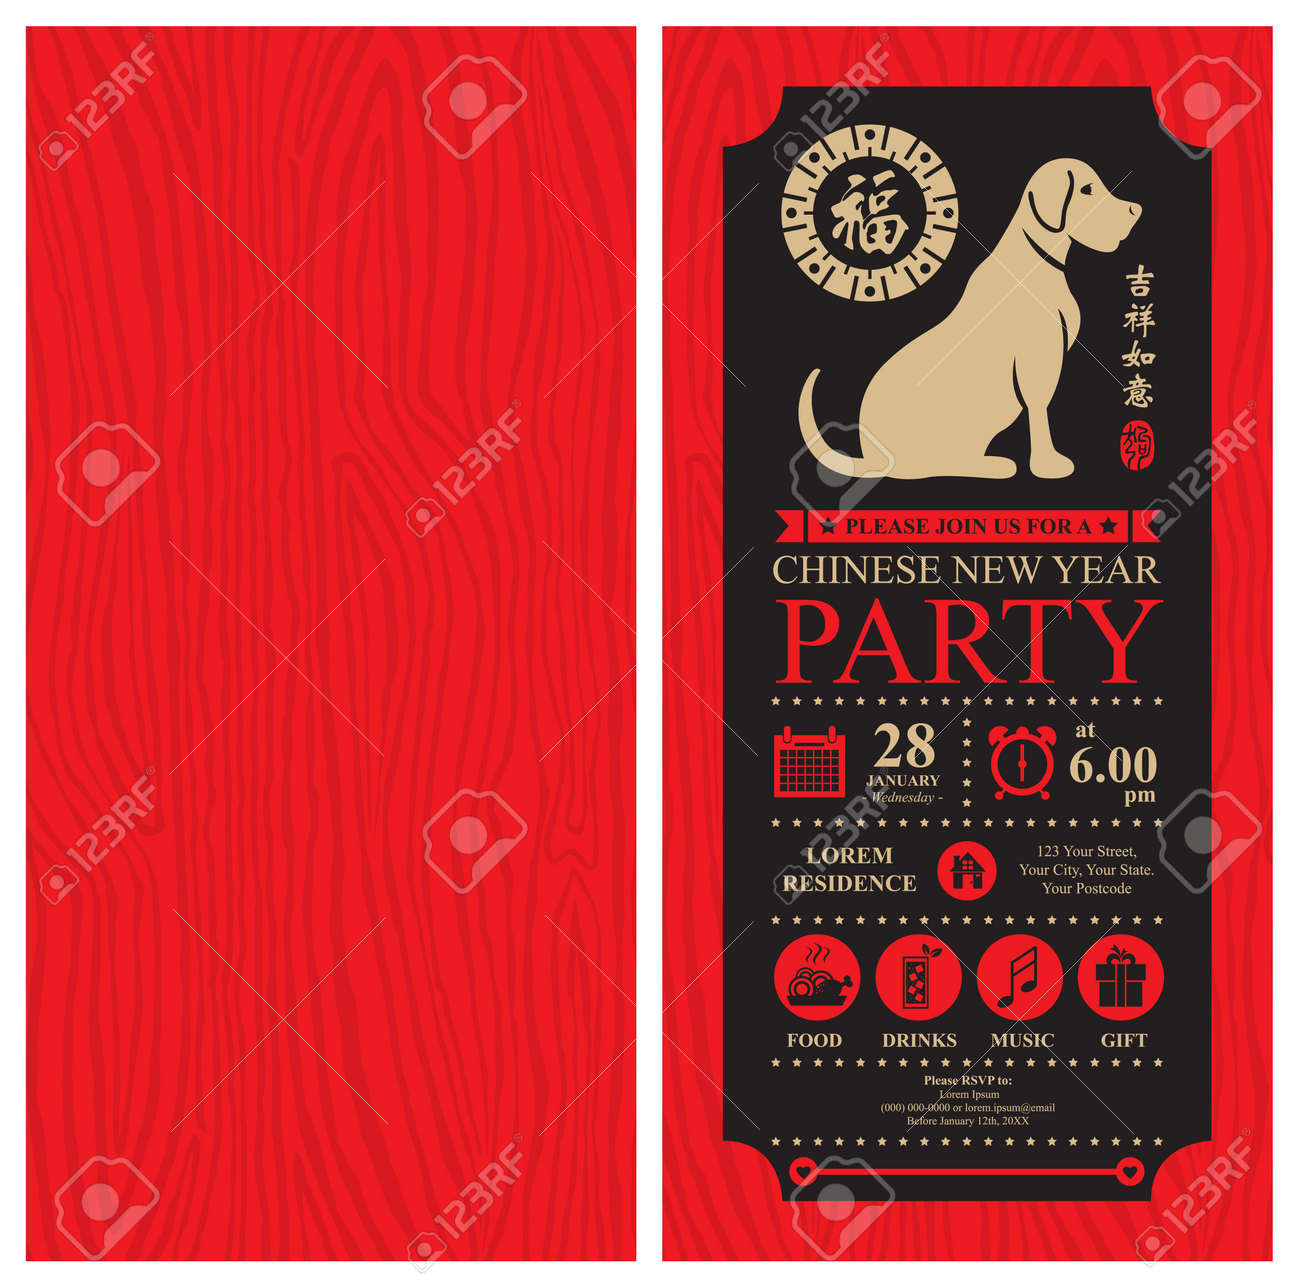 chinese new year invitation card template stock vector 89928233